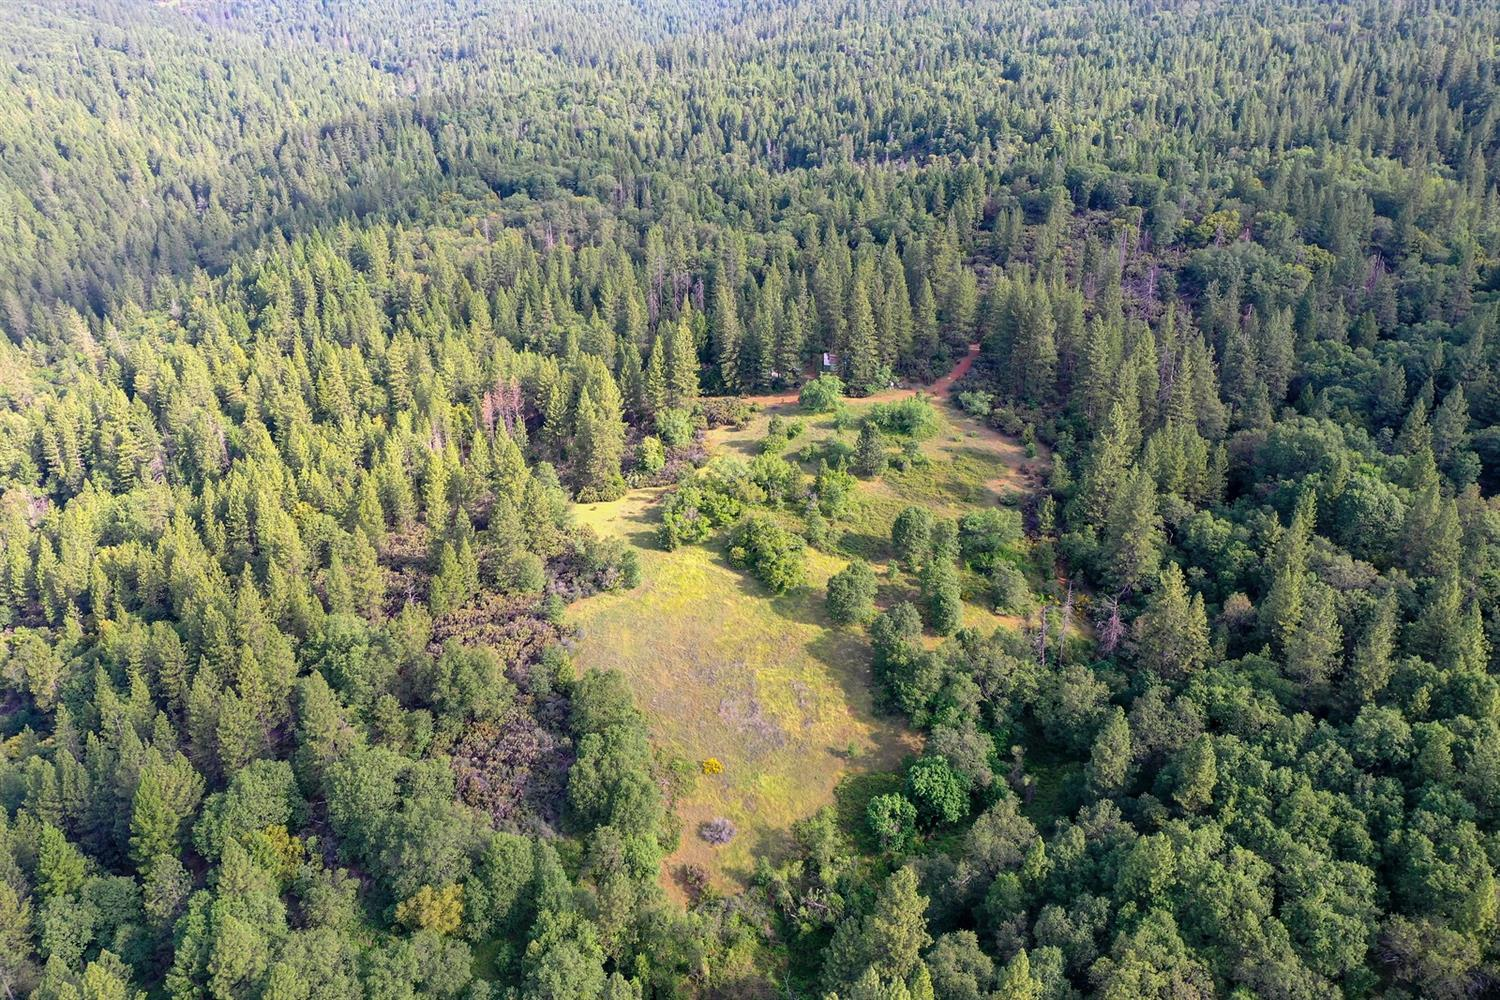 For sale in El Dorado county, near Georgetown, 251 acres of beautiful timberland with trails and roads and a stream. In two connecting parcels. (157) (93). Could be used for a hunting club, a bikers group, ATV enthusiast, or just a great mountain getaway. Has three trailers, a 50' a 35' and a 24'. A tool shed and 2, 40' containers that are roofed over to make a garage. Has a Rubber tired Ford tractor with a 5  foot wide brush hog and a 5' box Gannon scraper. A 550 ga. Fuel tank w/stand. Power, and a well producing 125 gallons per minute. Has not been logged in 27 years. Family owned since 1953. Located in an El Dorado county Green Zone, potentially qualifies for exterior commercial cannabis grow. Offered at $799,900.    Listed with parcel 0